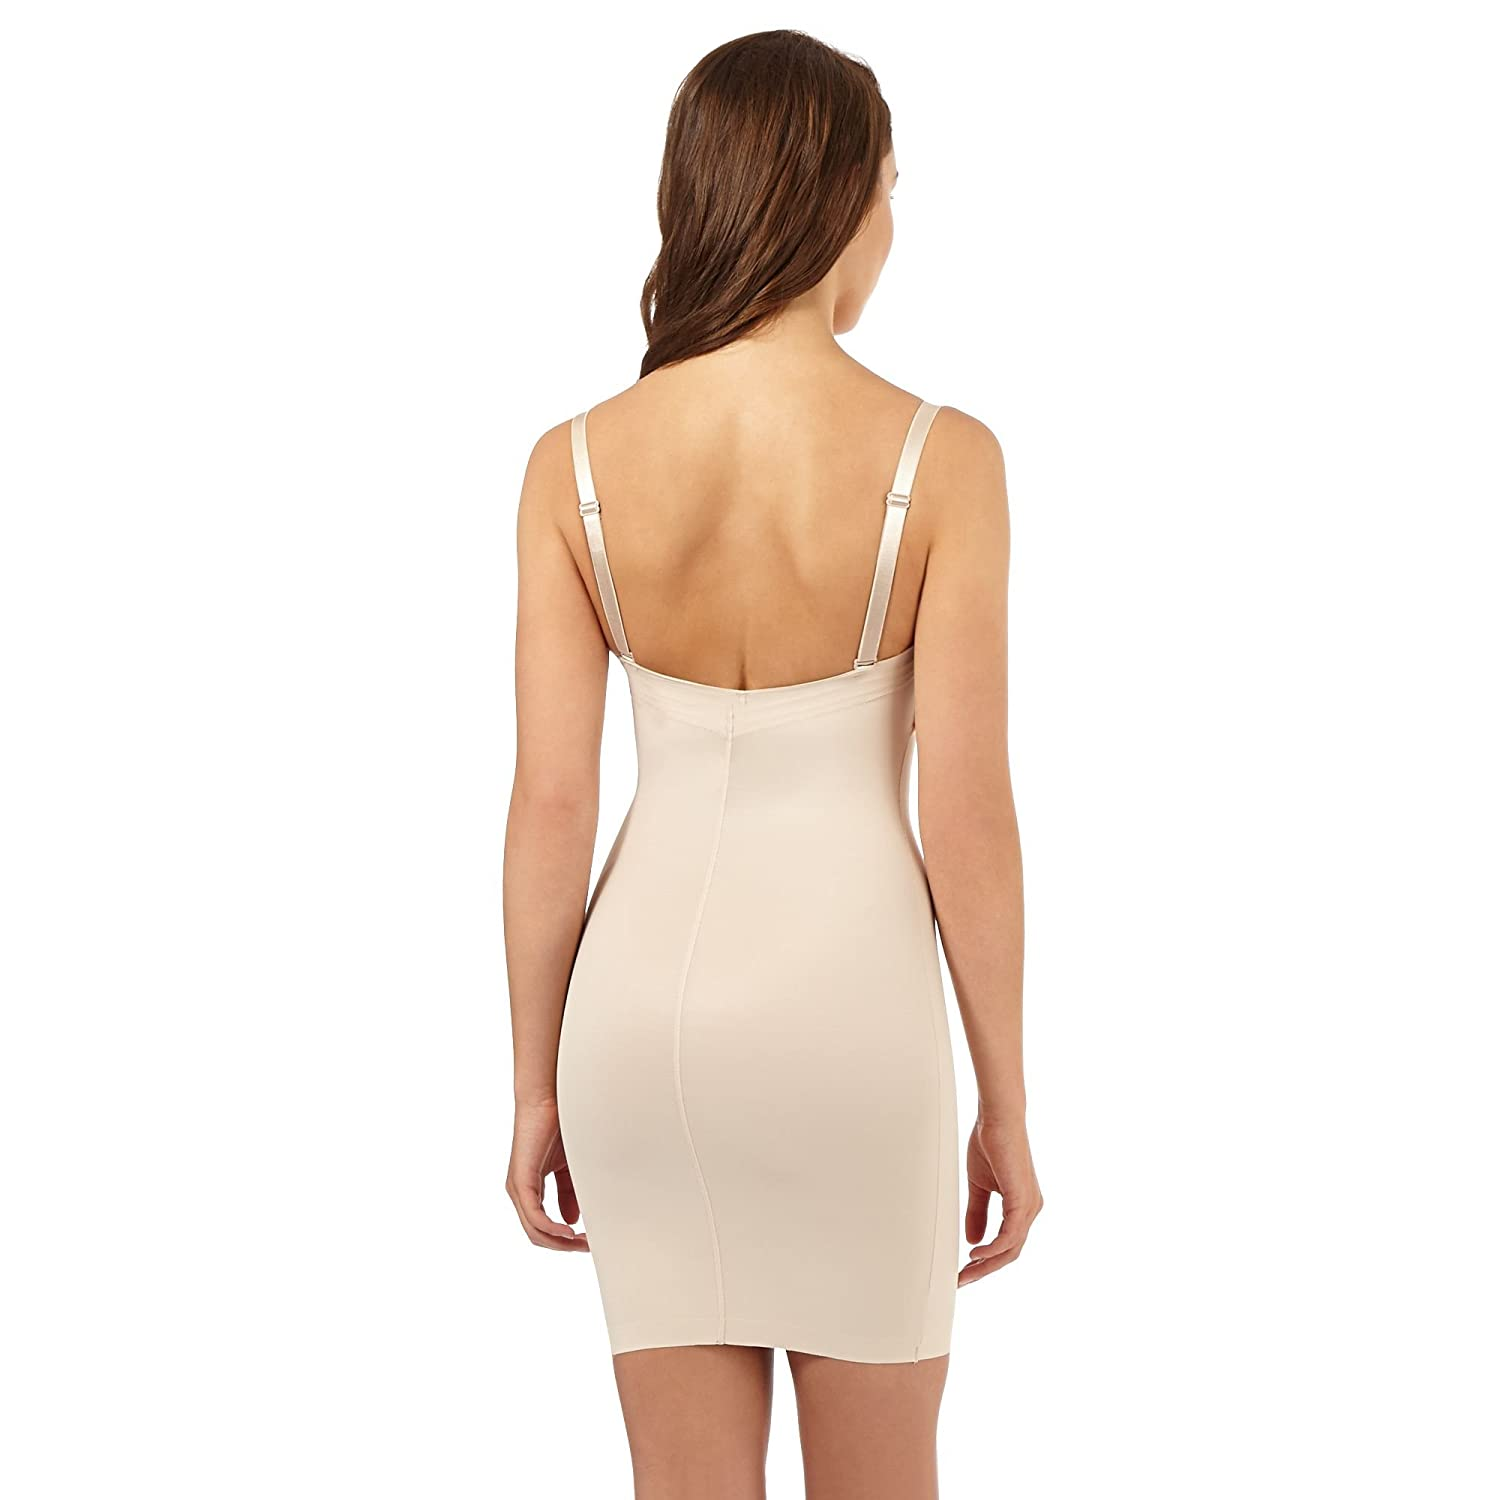 Debenhams The Collection Nude Firm Control Shaping Slip Size